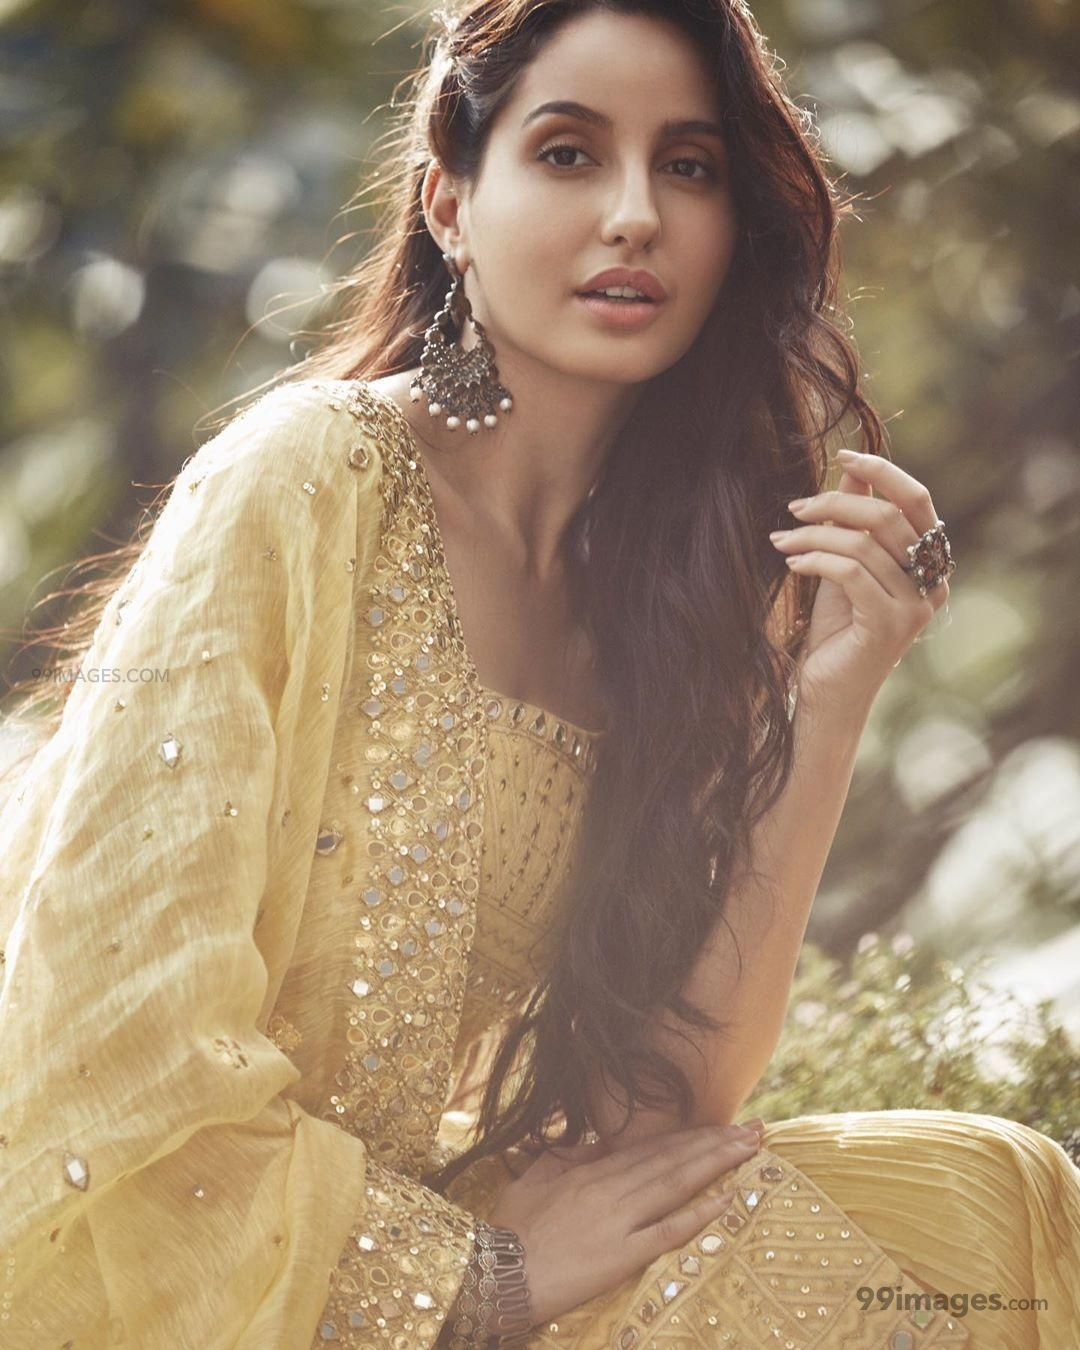 Nora Fatehi Latest Hot HD Photos & Mobile Wallpapers (1080p) (525677) - Nora Fatehi